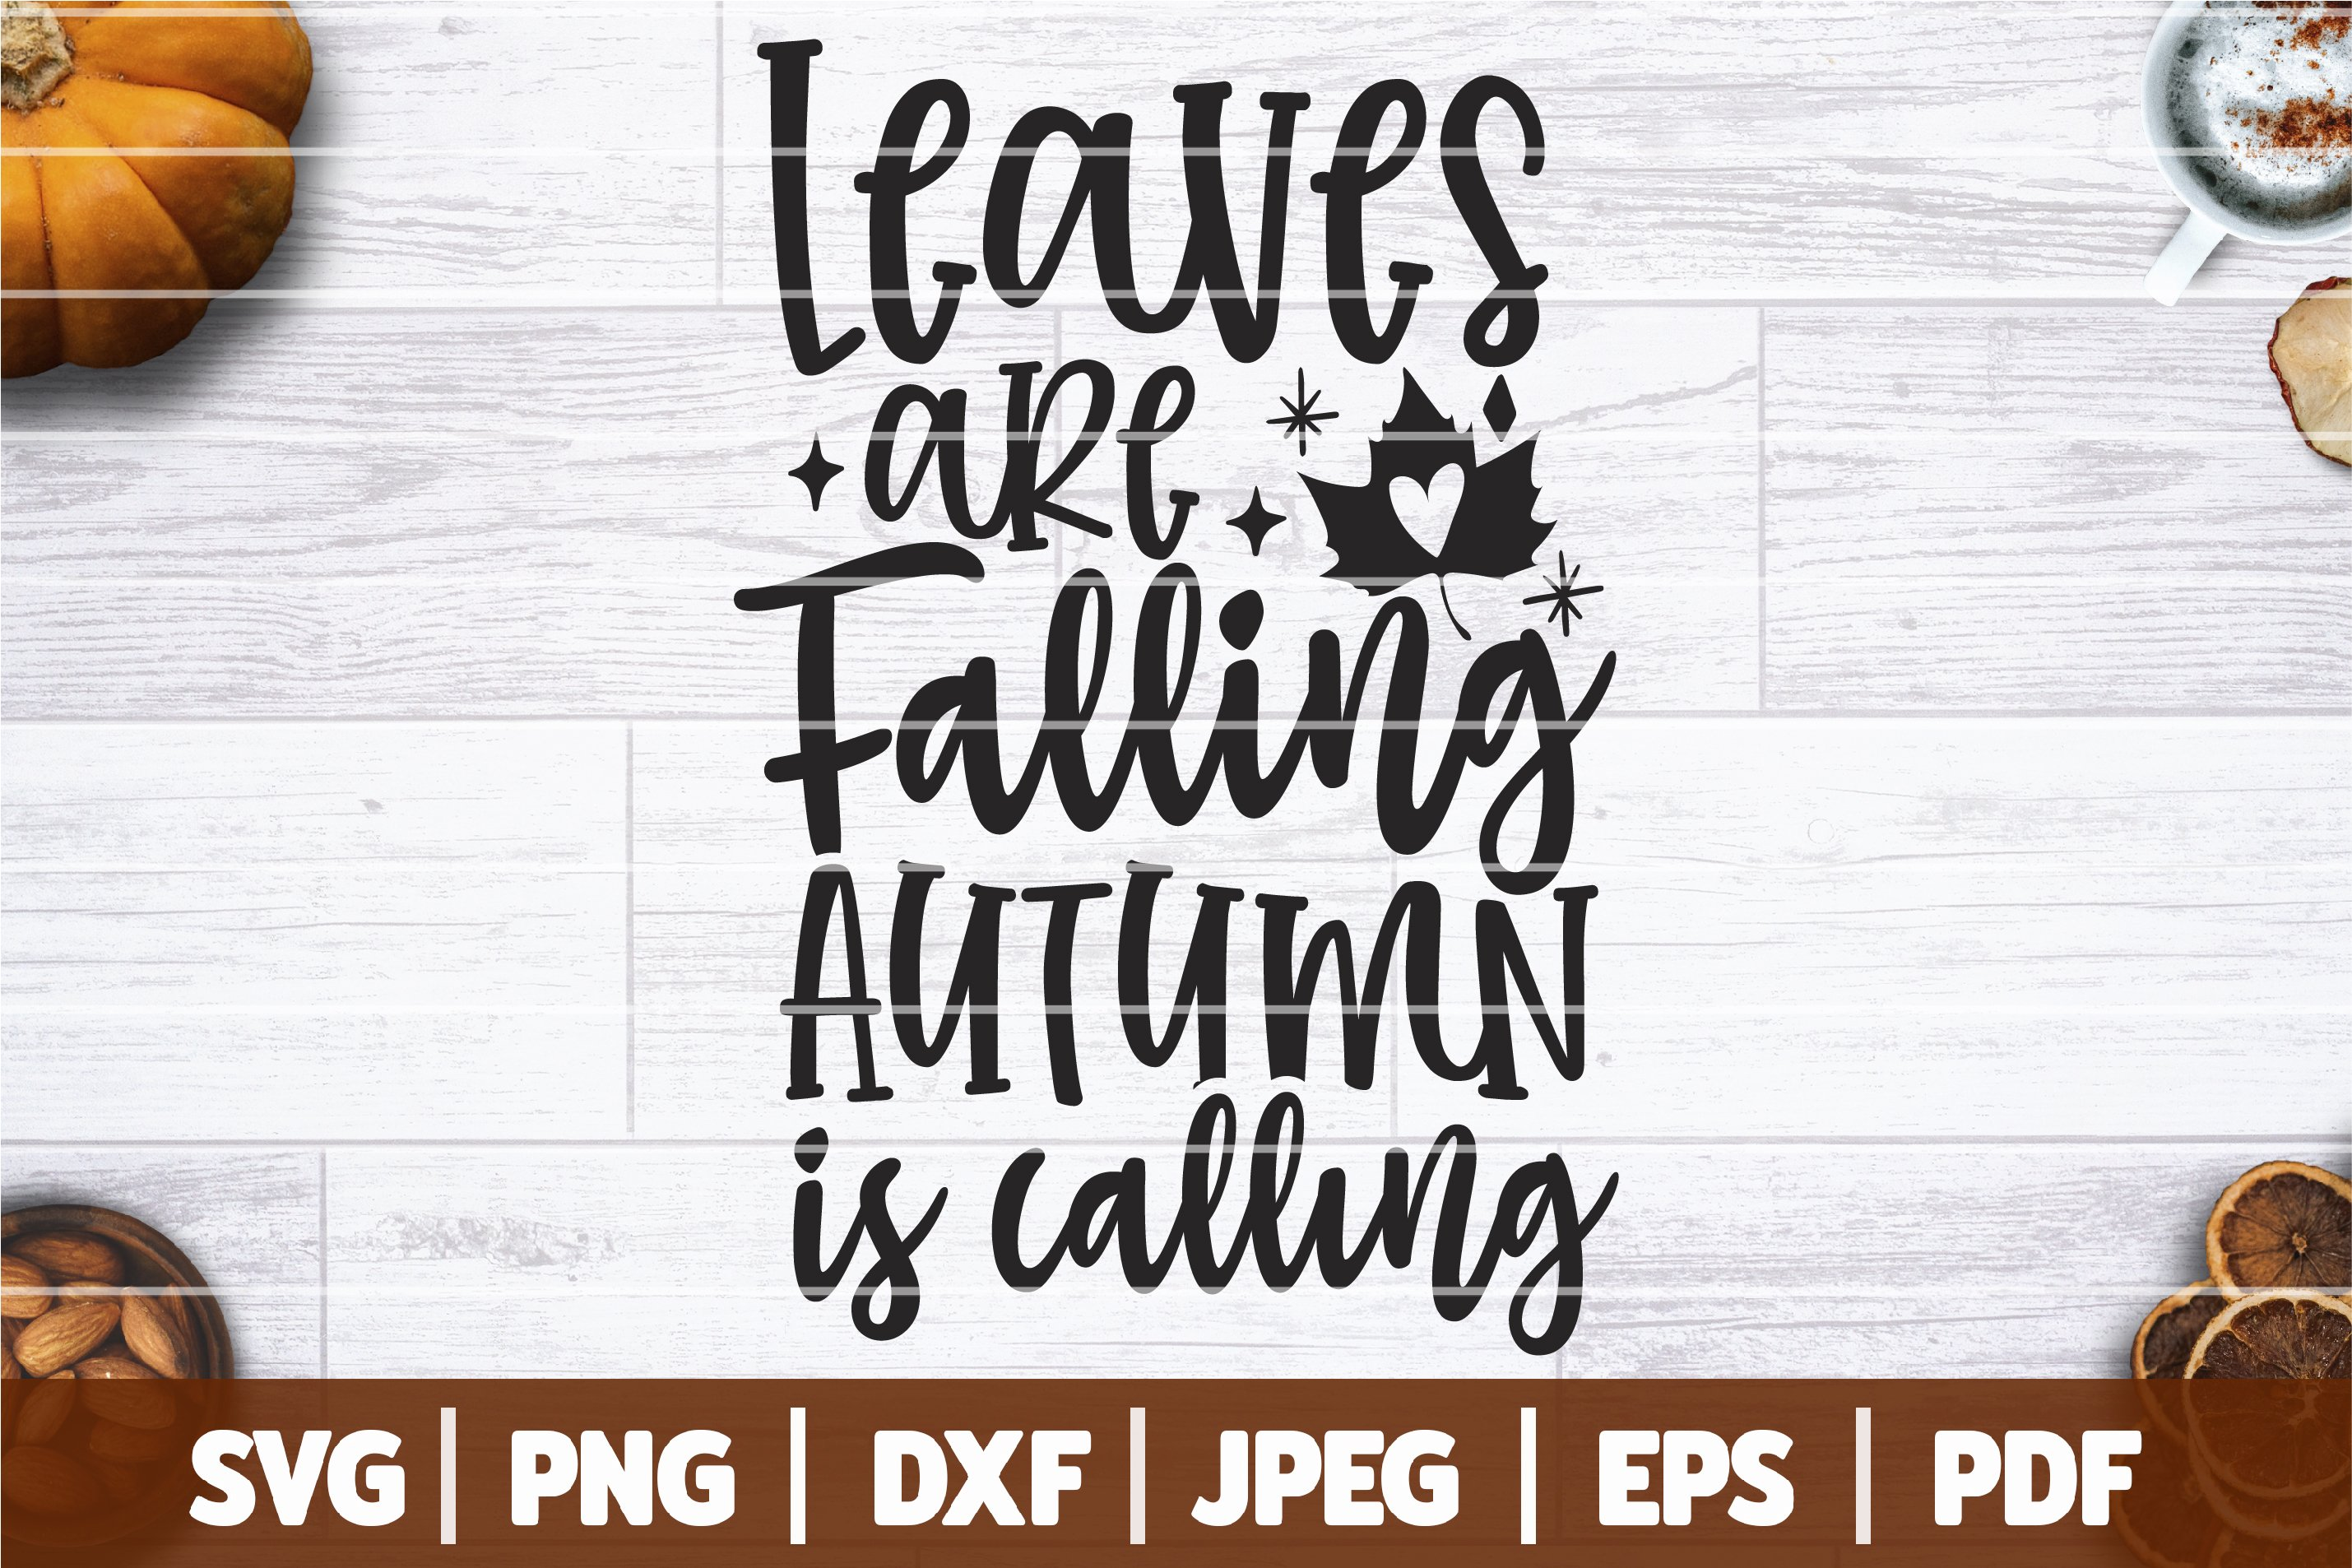 Leaves Are Falling Autumn Is Calling Svg Cute Fall Saying 884198 Cut Files Design Bundles